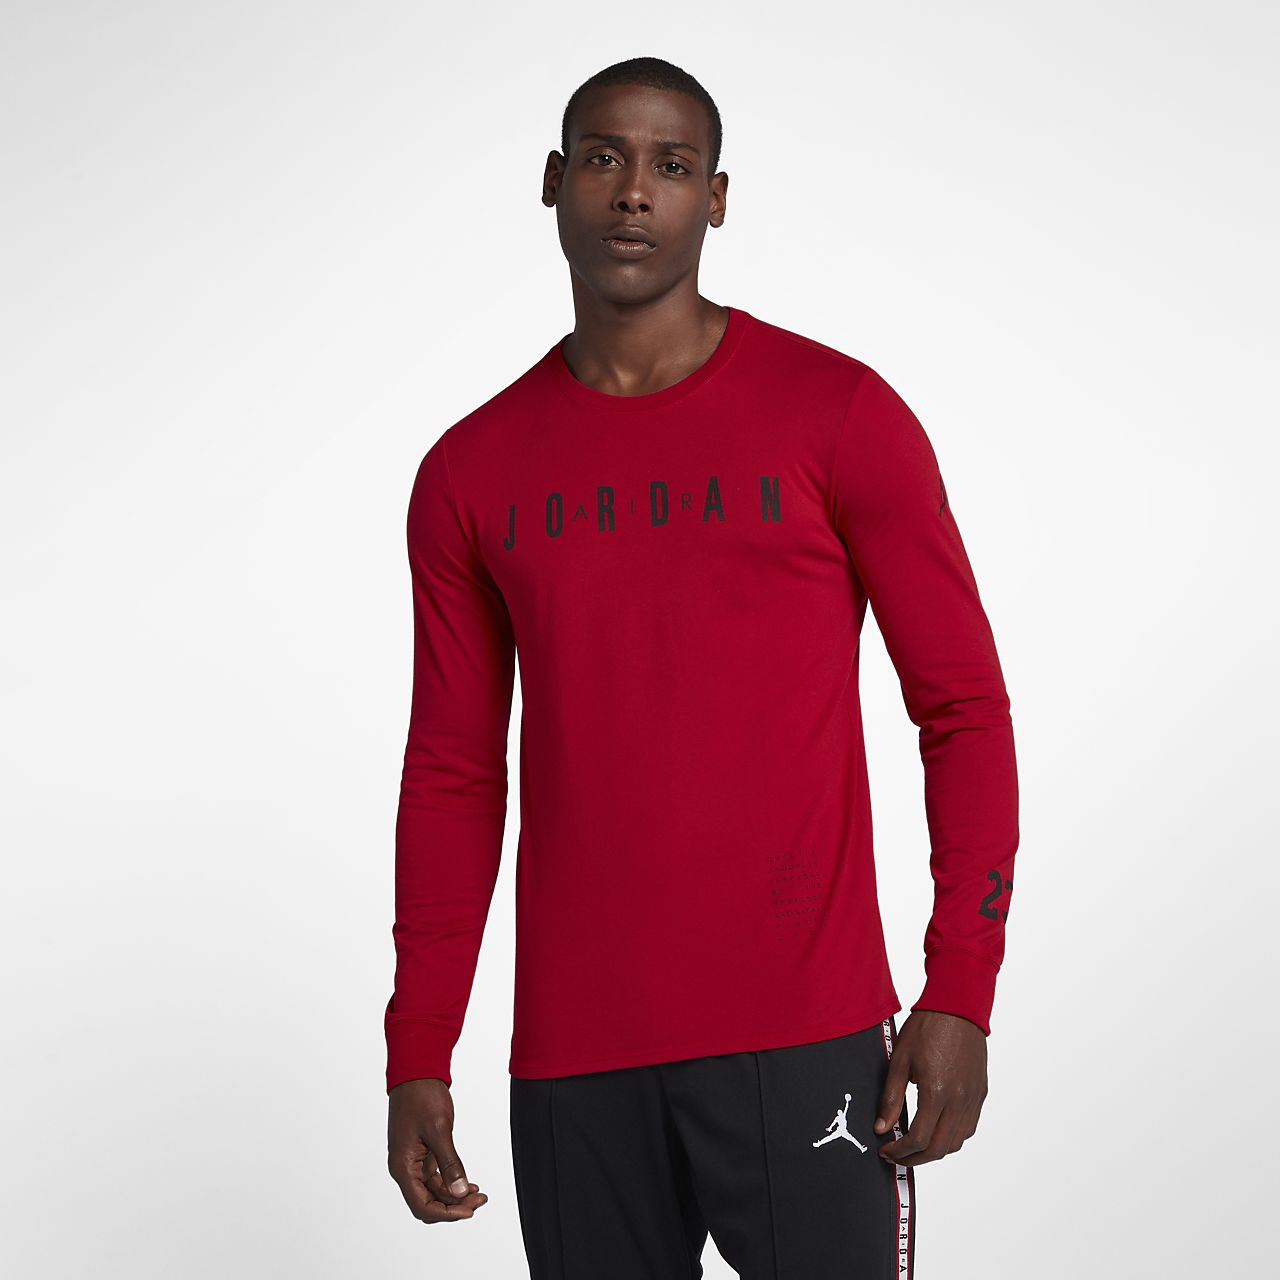 c43f357940de Jordan HO 1 Men s Long-Sleeve Basketball T-Shirt. Nike.com